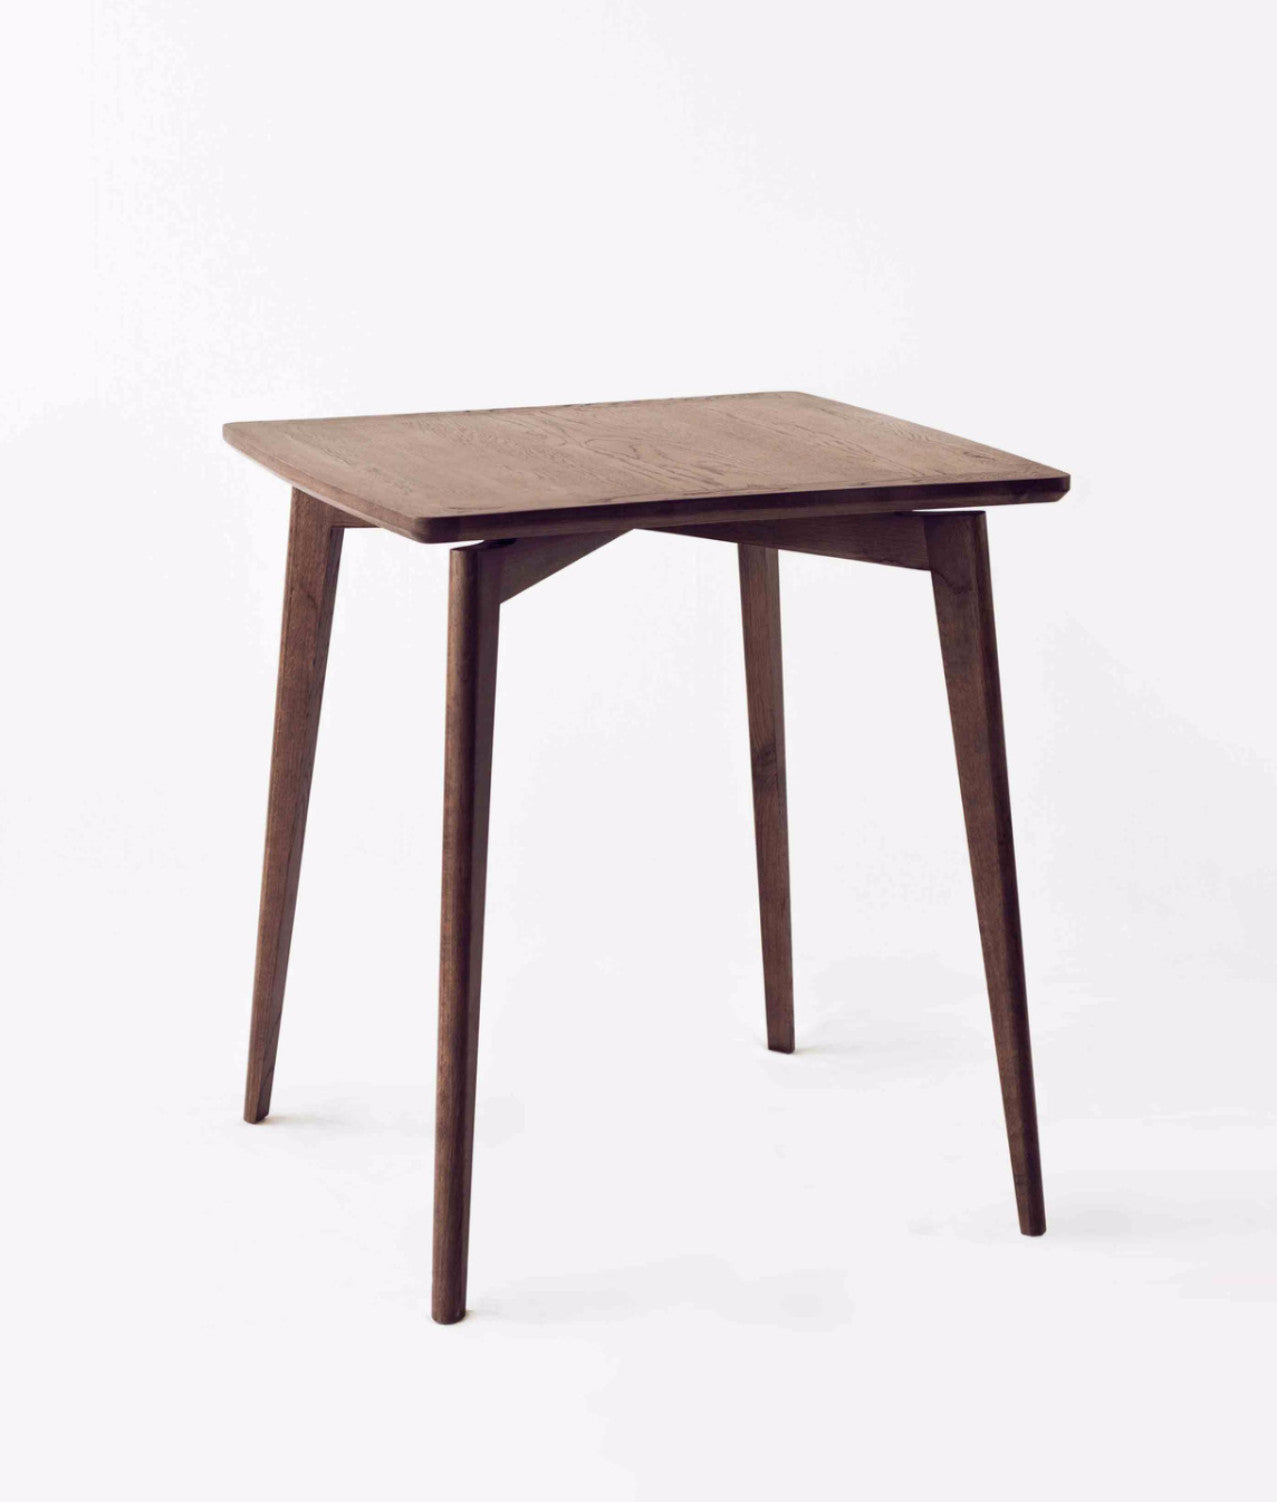 Ziinlife TOGETHER TABLE WALNUT BROWN